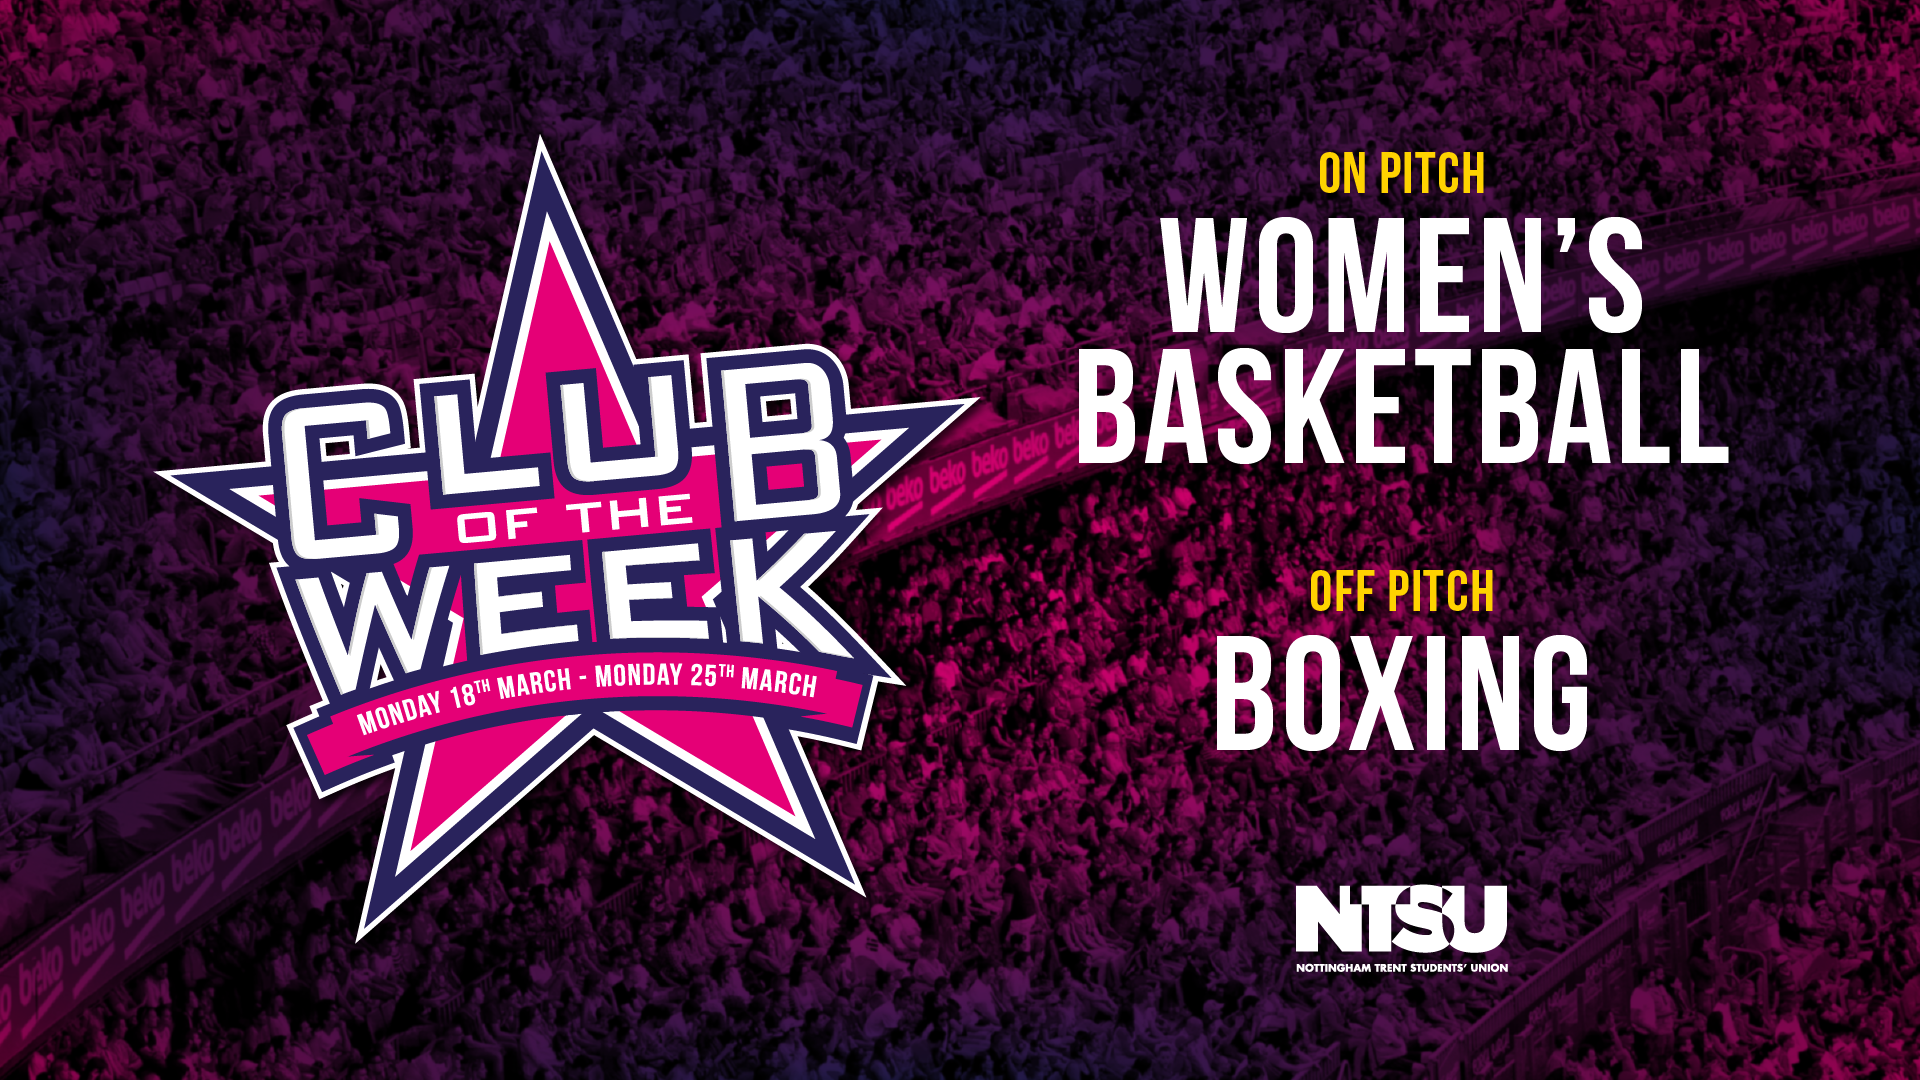 On pitch Boxing Off pitch women's Basketball